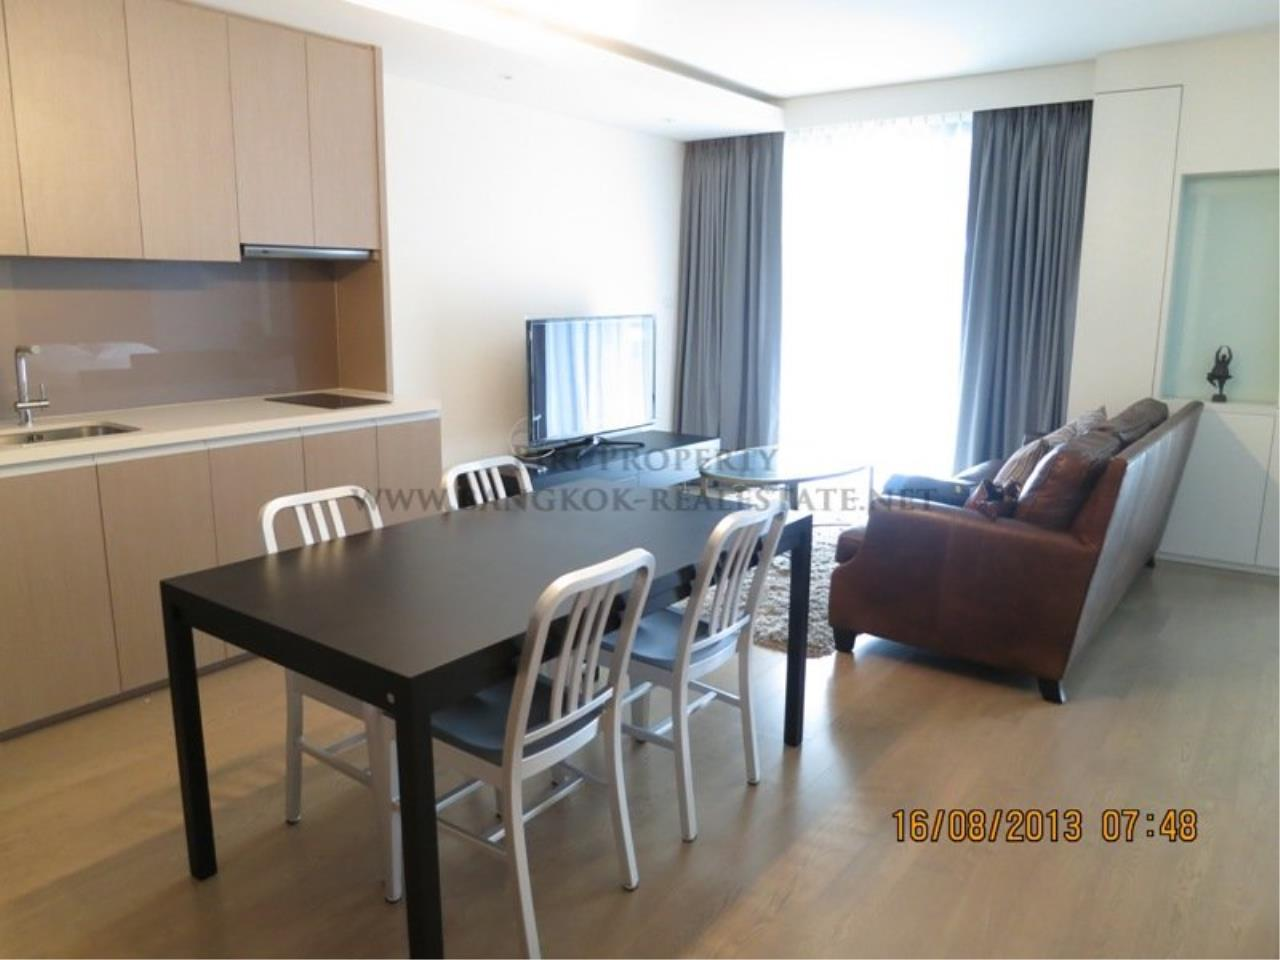 Piri Property Agency's Mode 61 - Exclusive 1 Bedroom Condo in Ekkamai near Park Lane 4